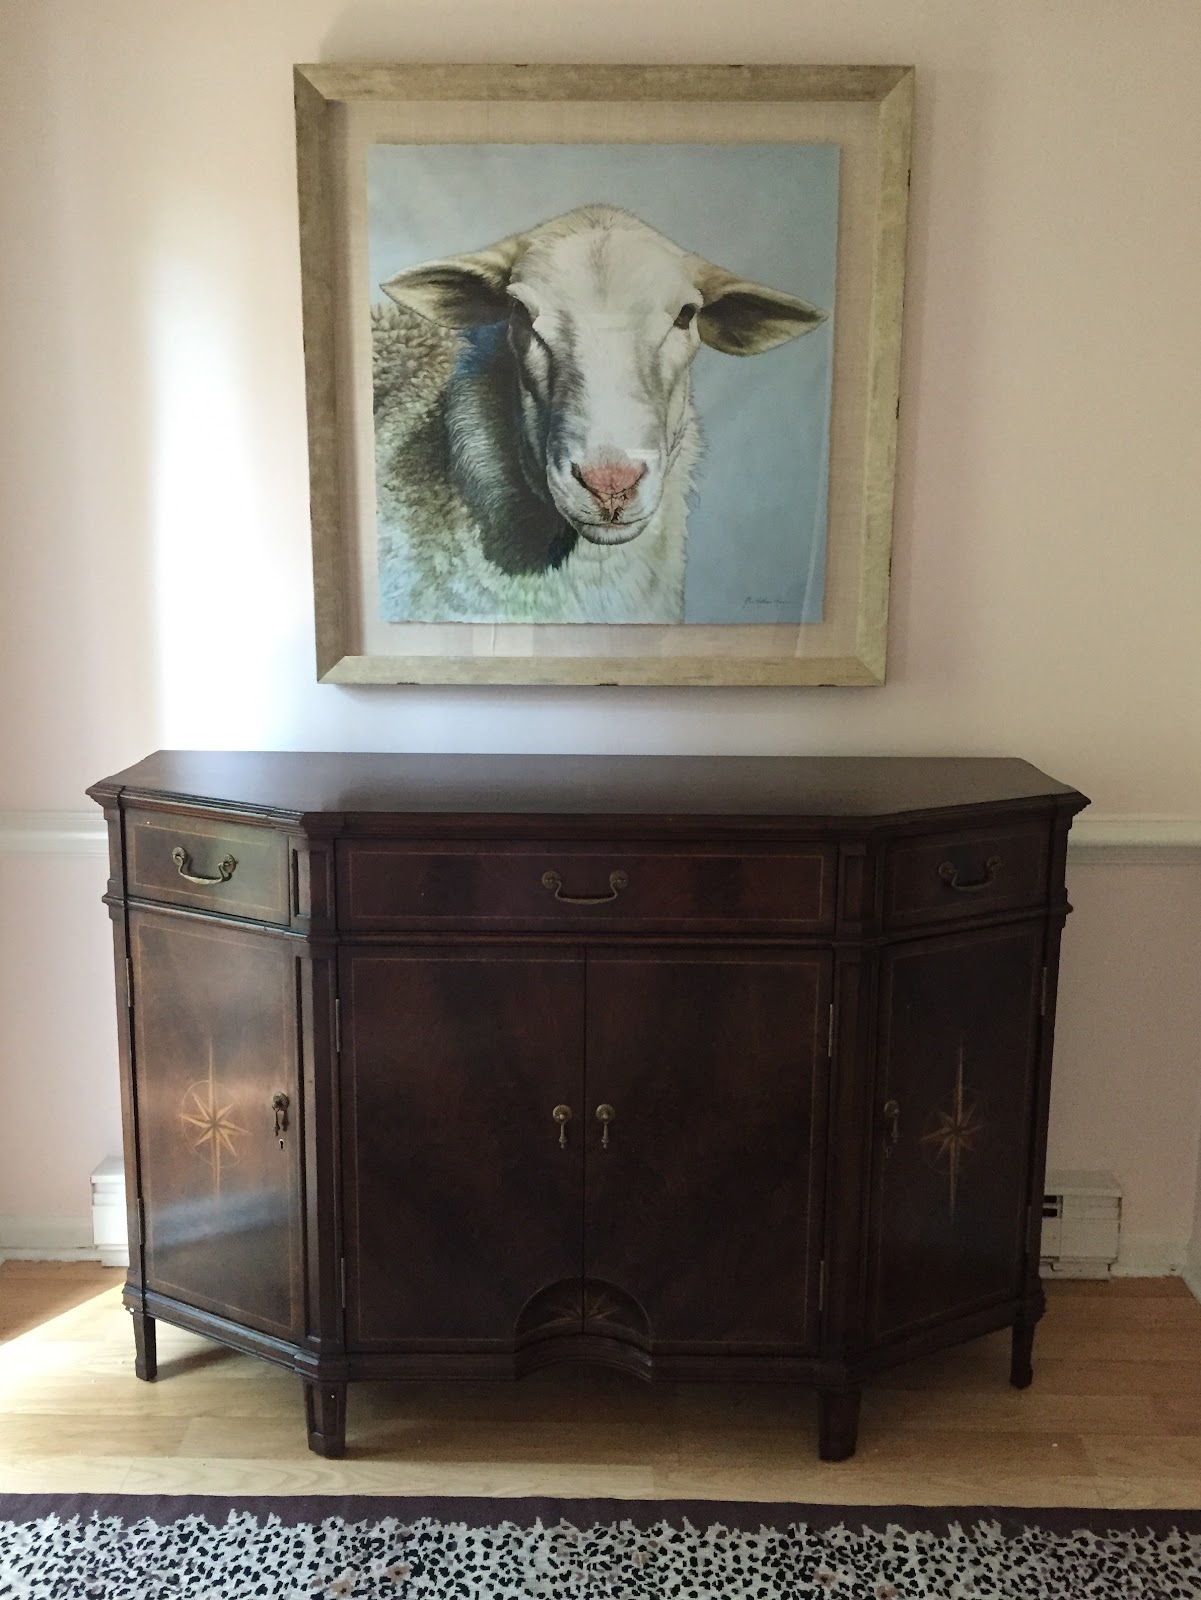 My Green Front Furniture Purchases